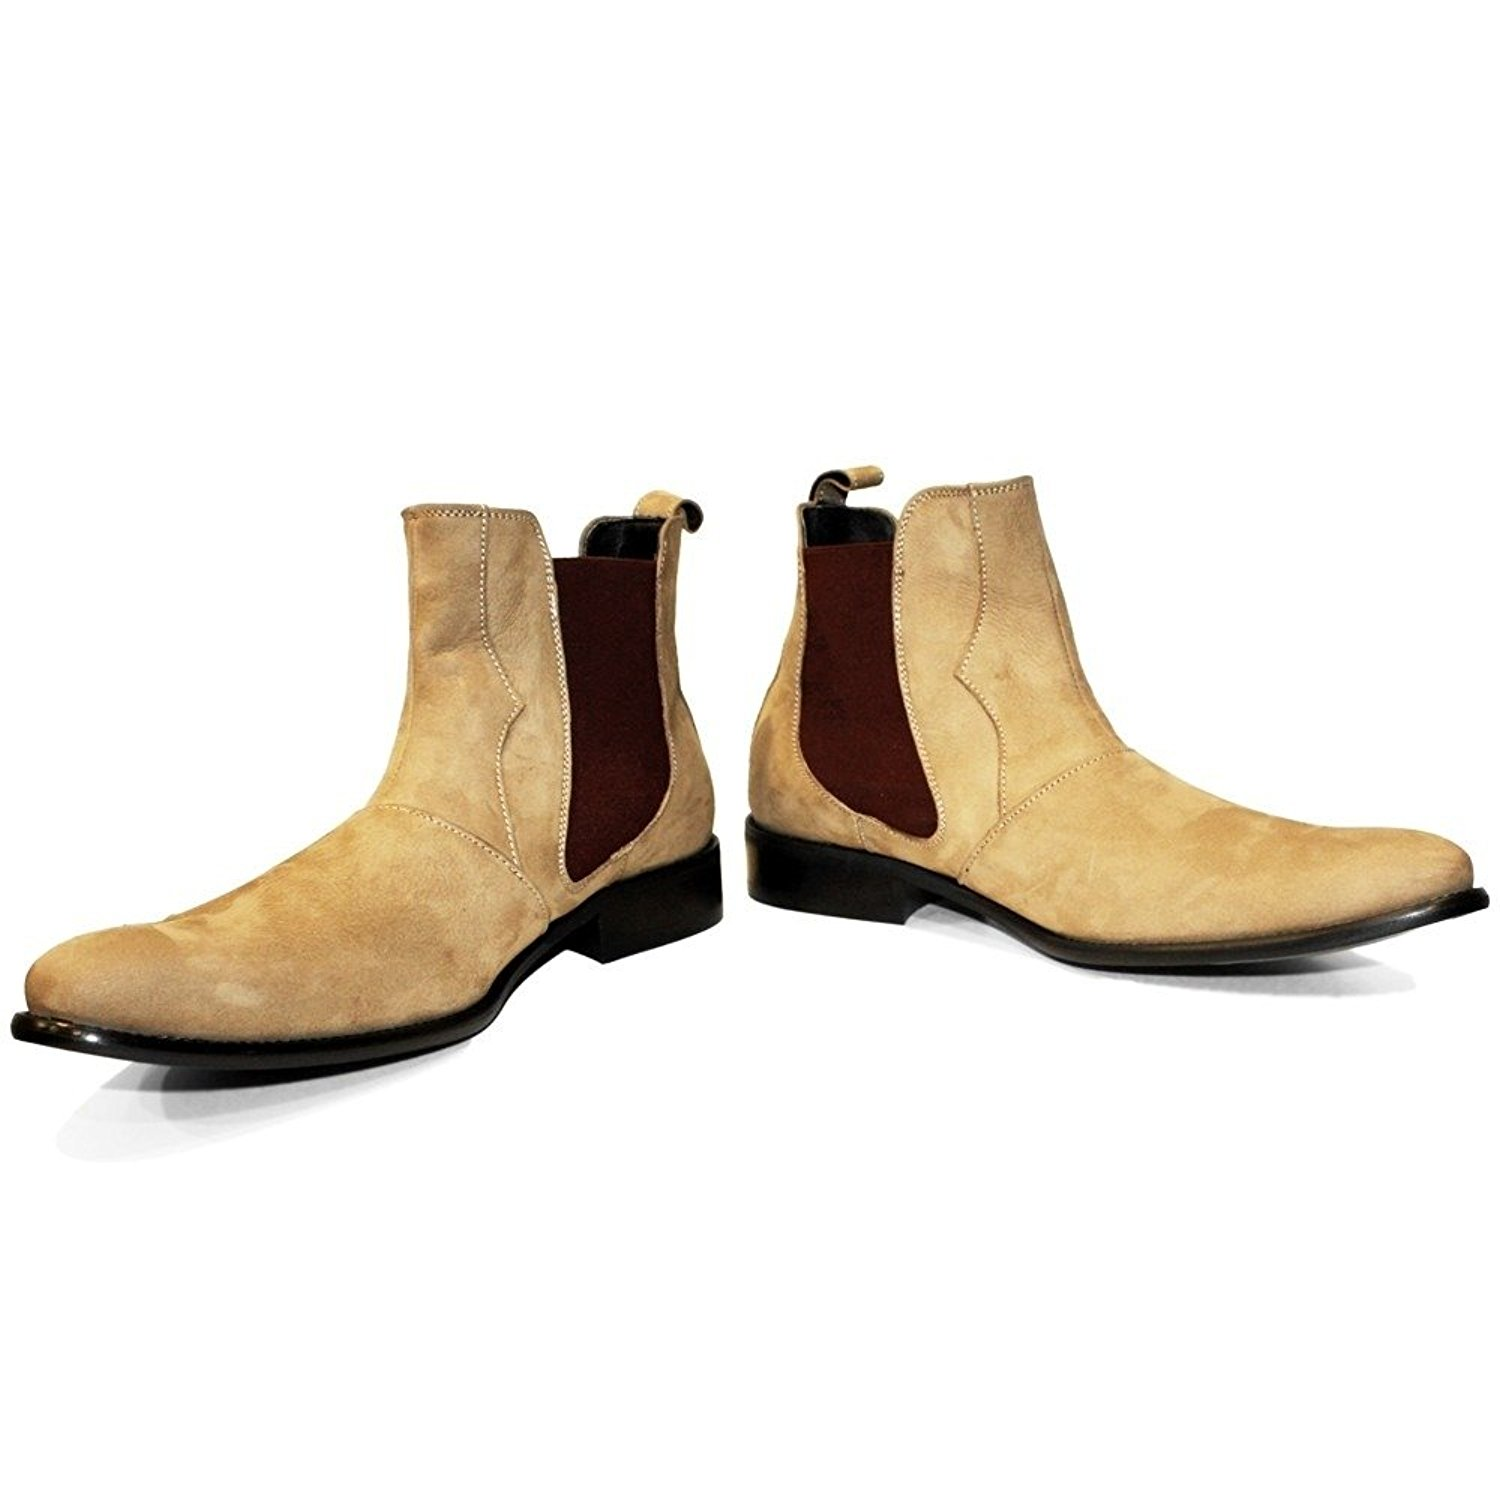 PeppeShoes Modello Lethero - Handmade Italian Mens Brown Ankle Chelsea Boots - Cowhide Suede - Slip-On